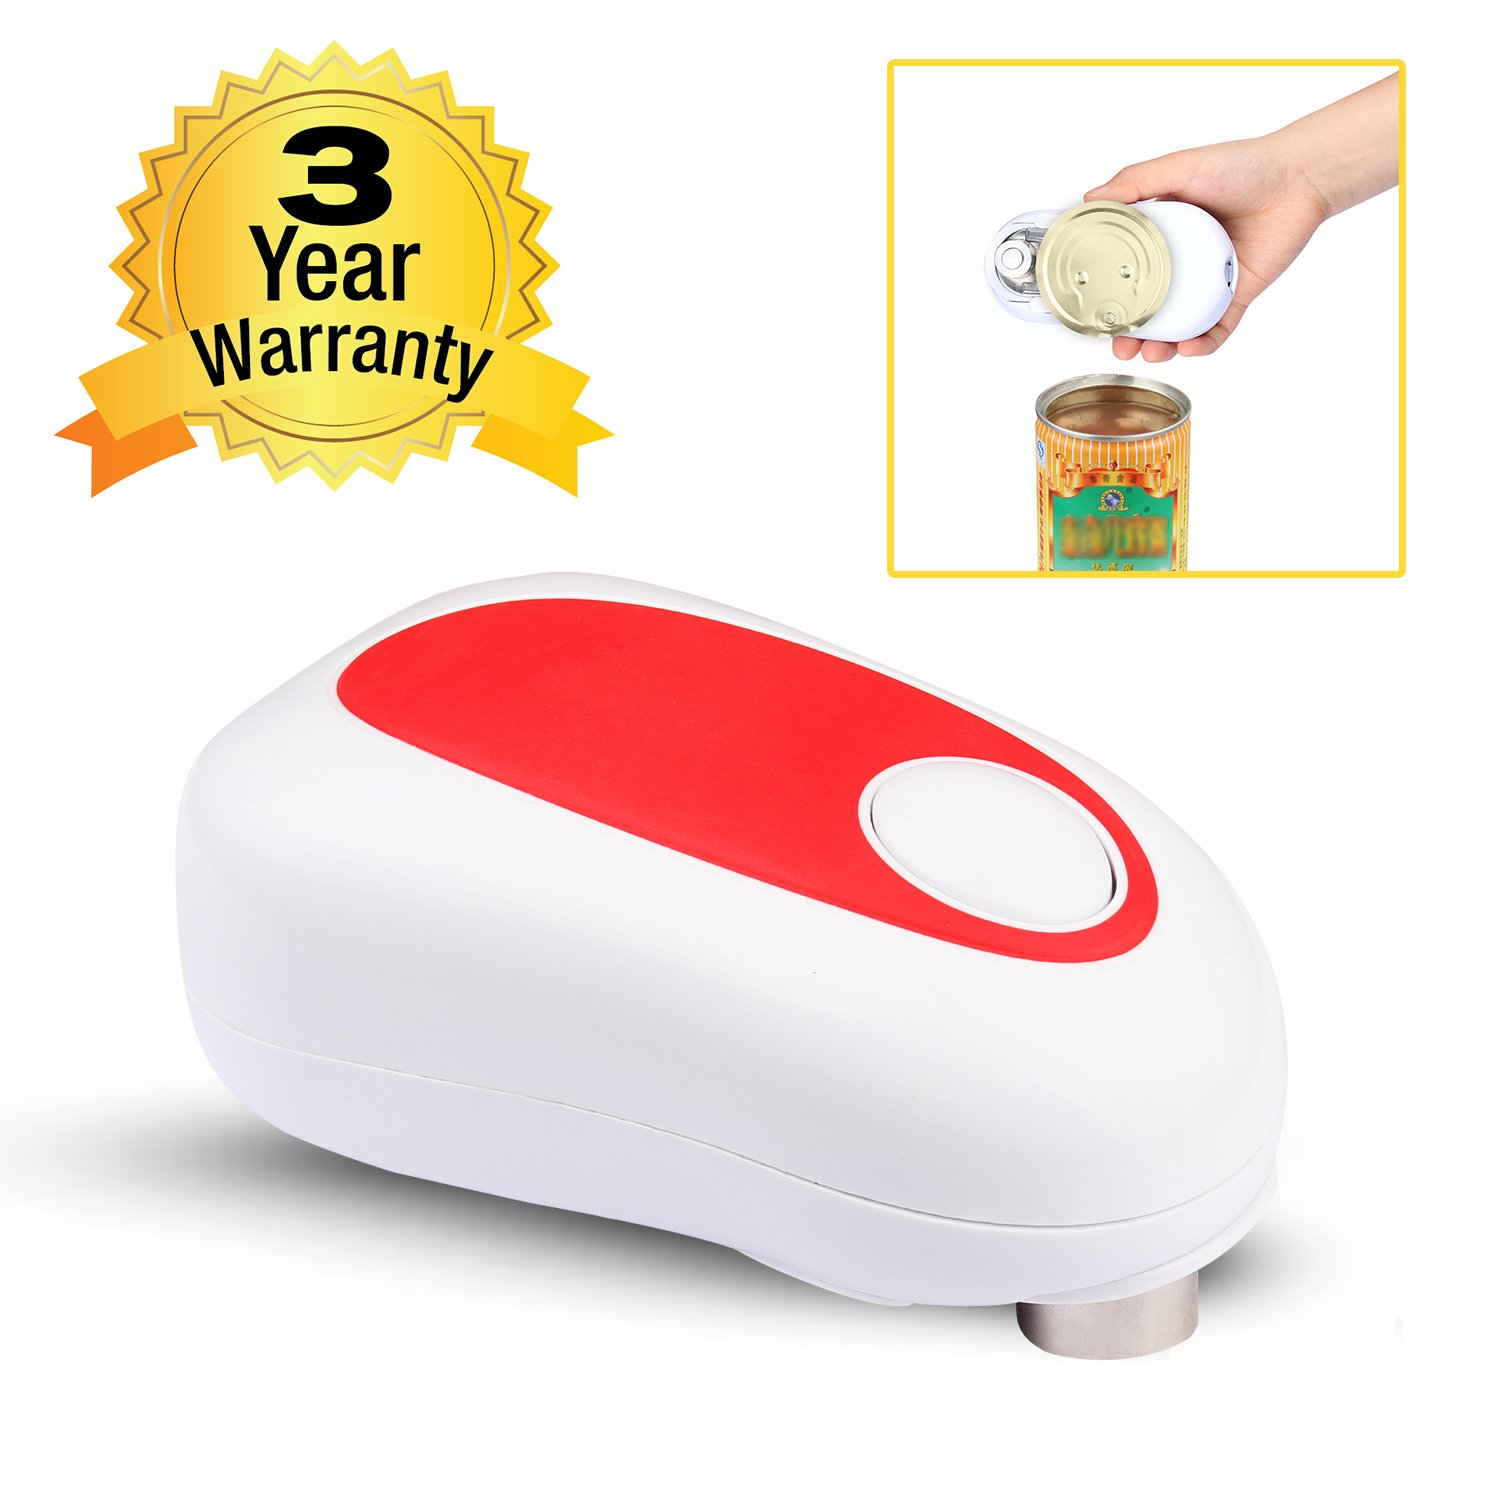 Can Opener, Electric Can Opener Smooth Edge One Touch Can Opener, Electric Can Openers for Seniors with Arthritis, No-Hands One Touch Can Opener(not included 4AA batteries)